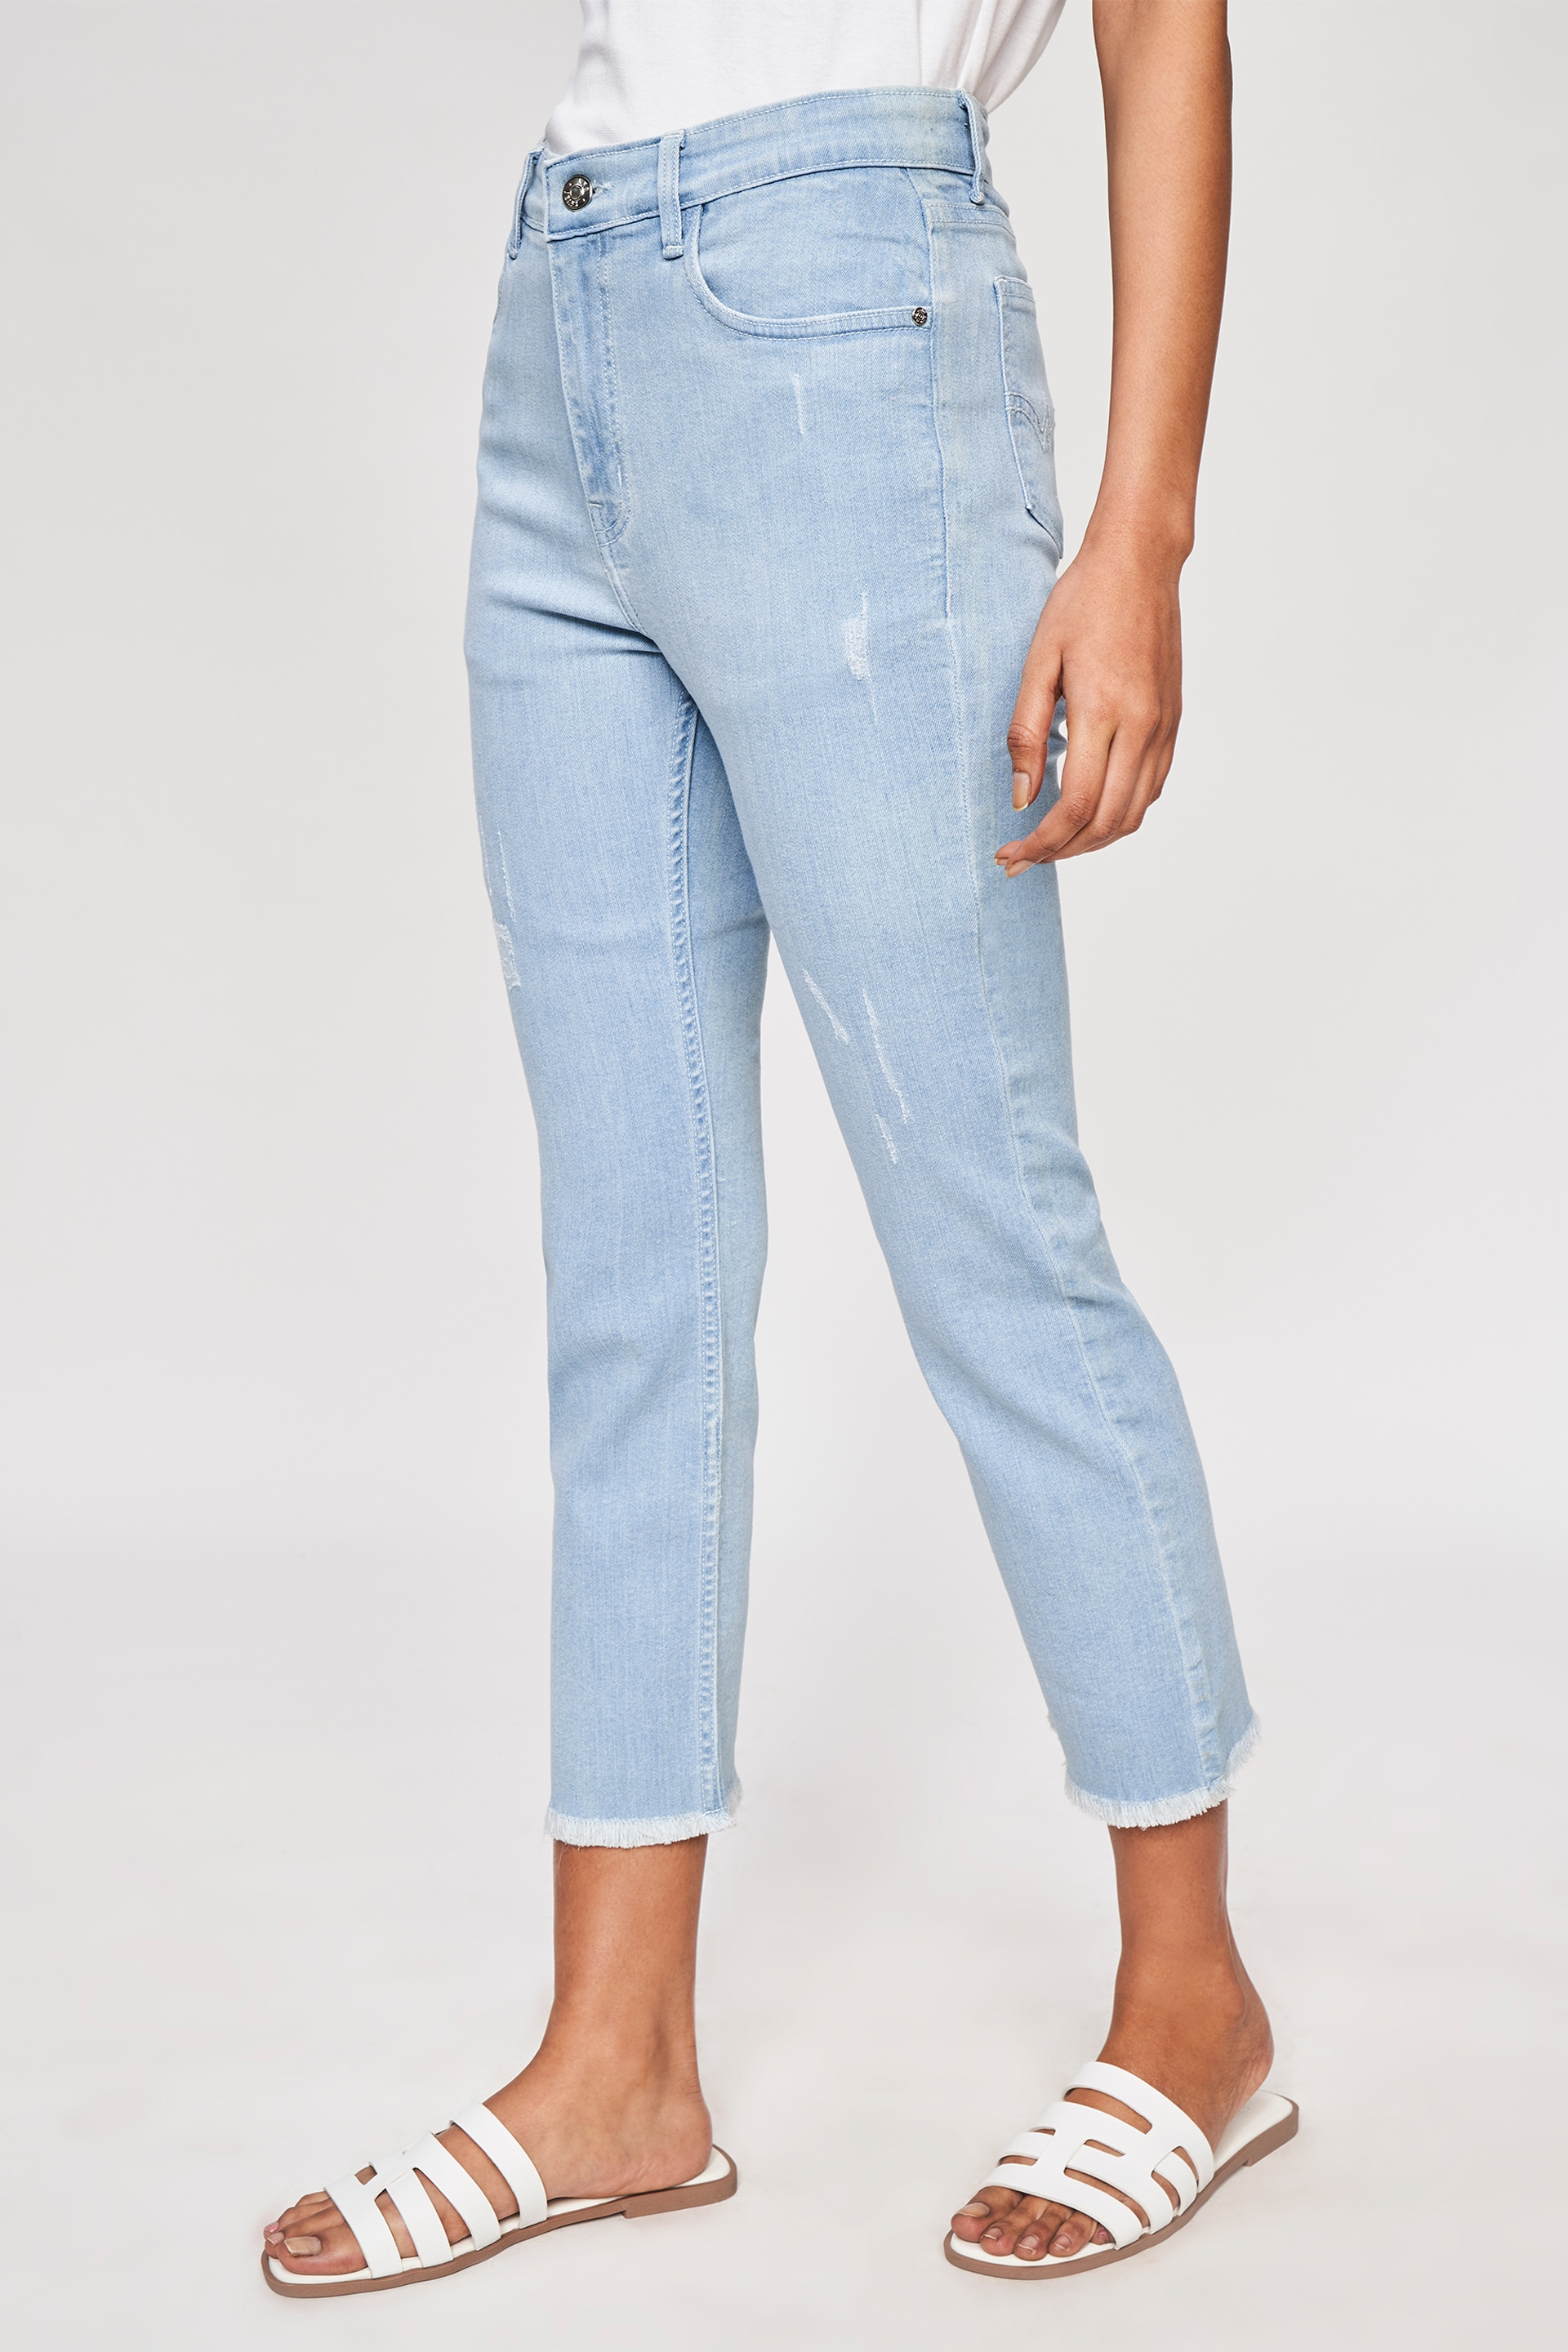 AND   Light Blue Self Design Cropped Bottom